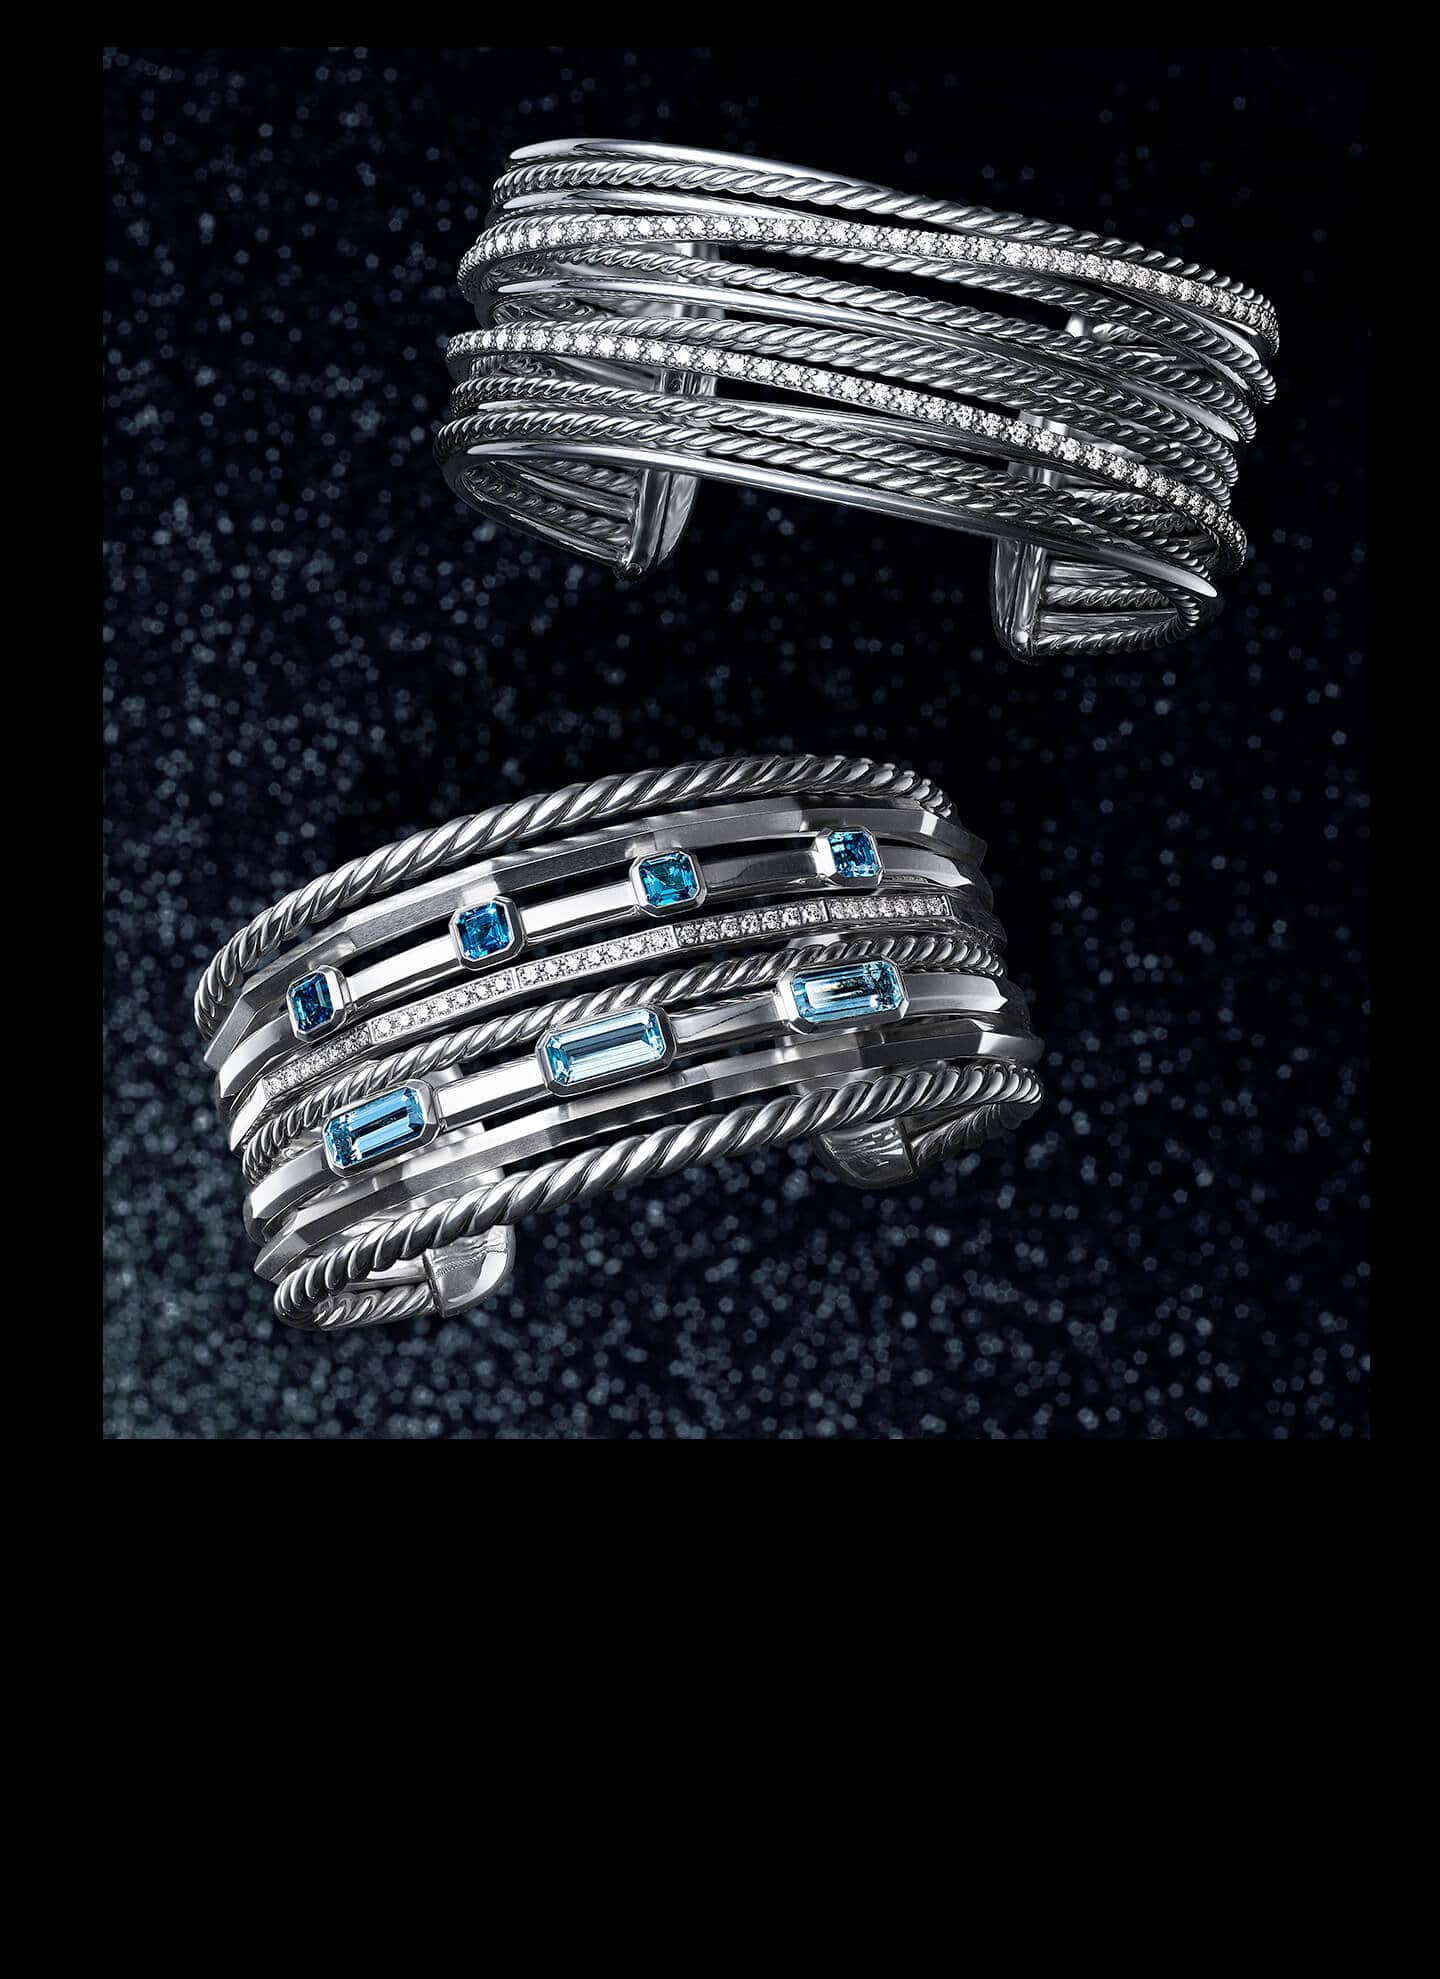 A David Yurman Stax cuff bracelet is placed below a David Yurman Crossover cuff bracelet. Both women's bracelets are crafted from sterling silver with white diamonds and with or without blue topaz, and placed atop a black glittery background.